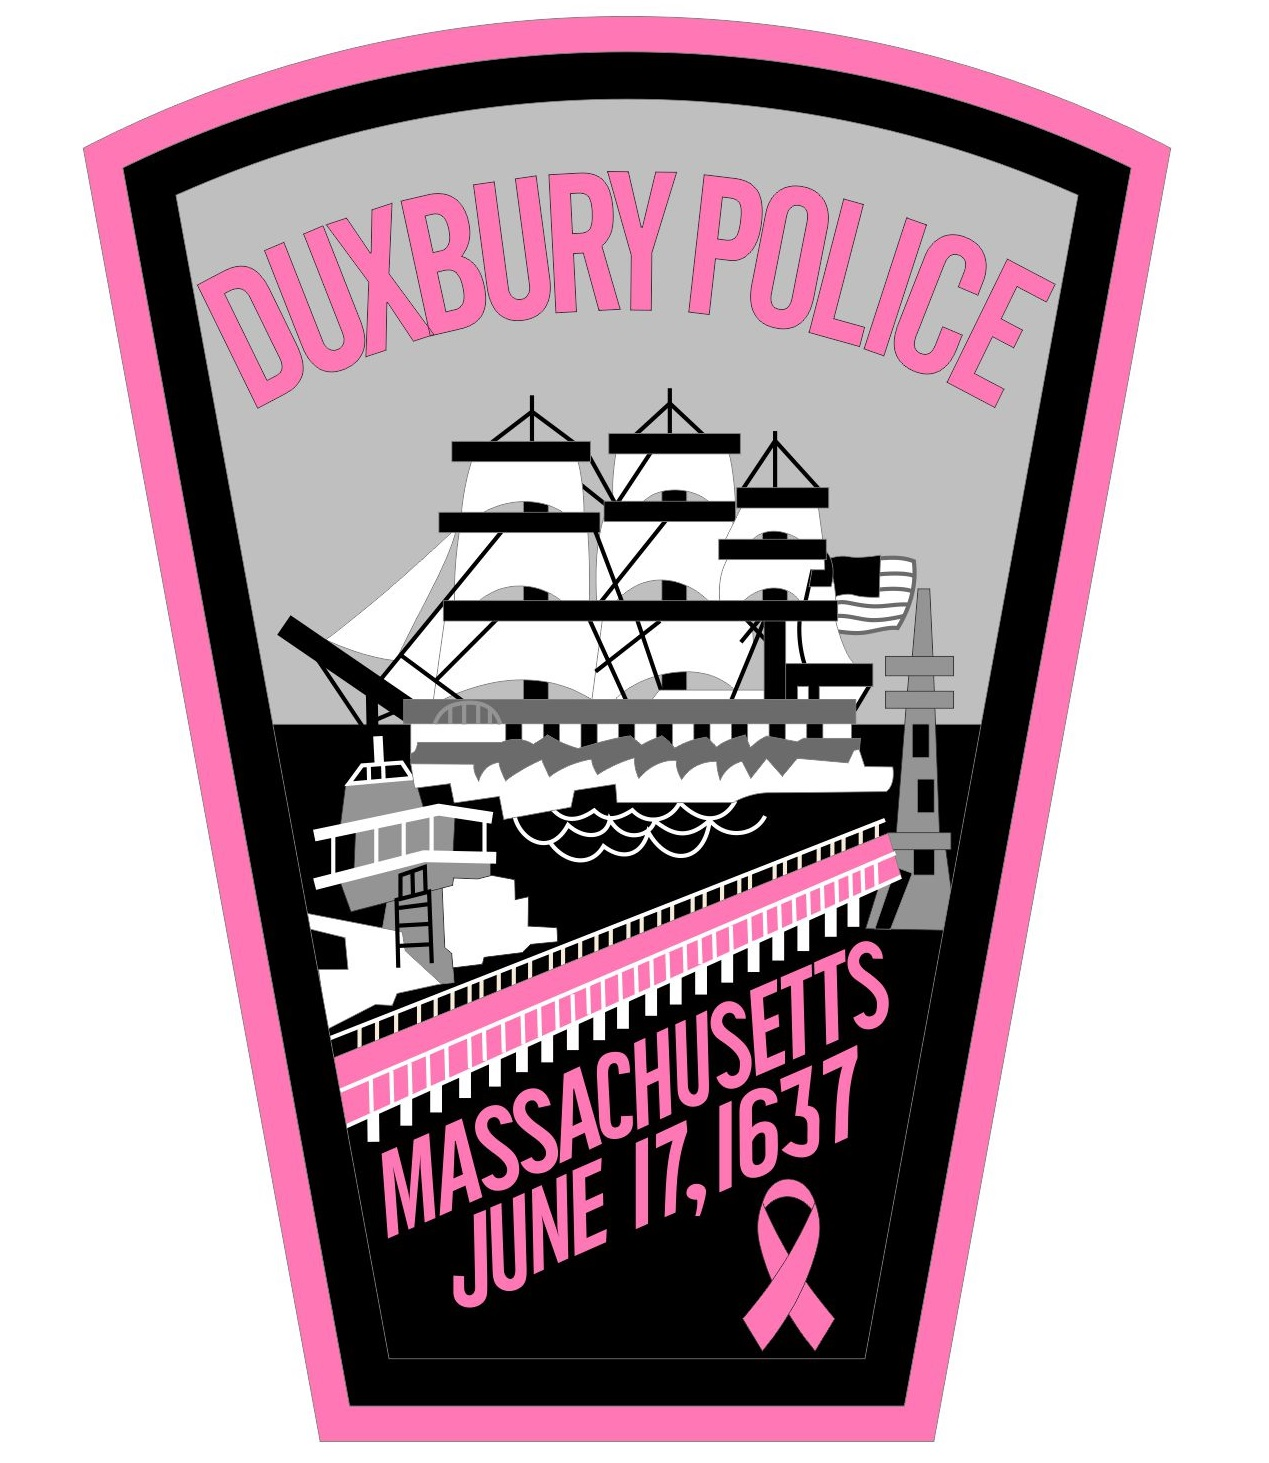 Irwindale Ca Official Website Pink Patch Project Agencies Andrew Smith Floral Printed Shirt Navy L Duxbury Pd